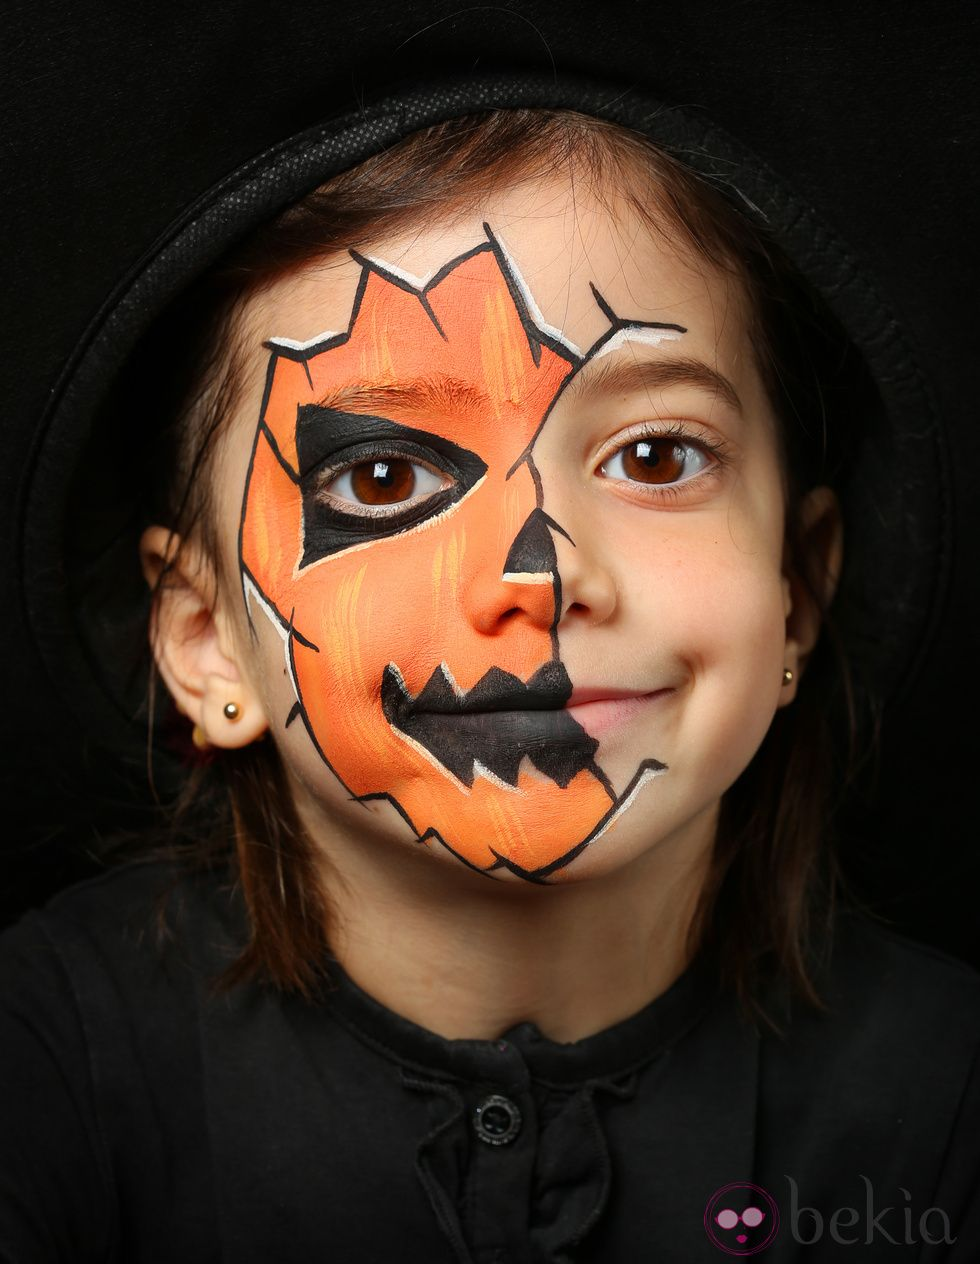 maquillage de citrouille pour enfant halloween. Black Bedroom Furniture Sets. Home Design Ideas